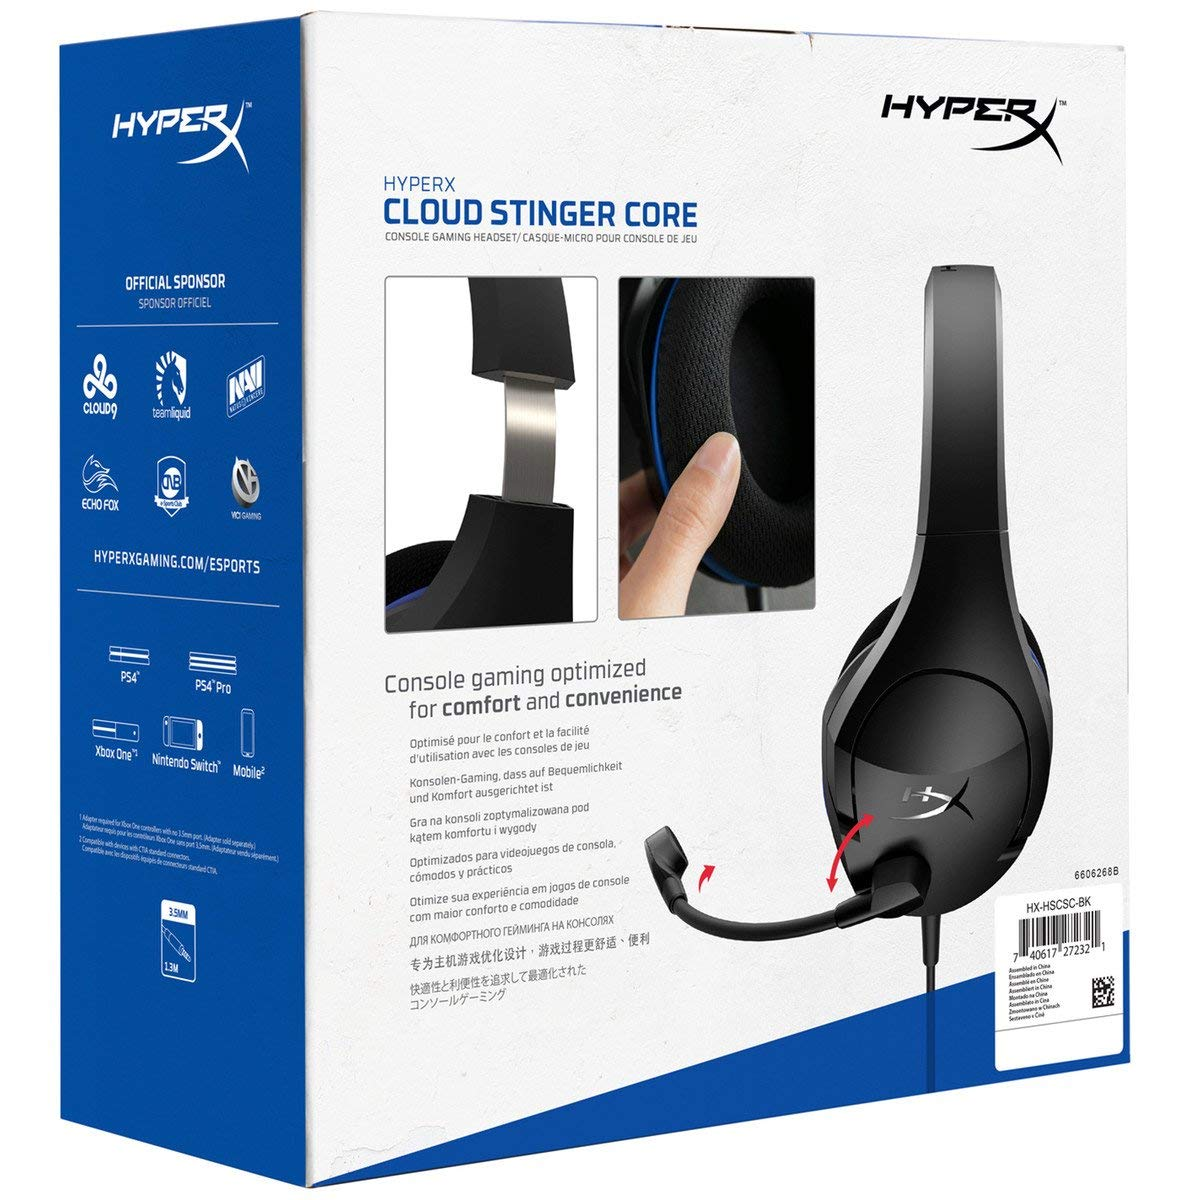 HyperX Cloud Stinger Core - Gaming Headset for PS4, Playstation 4, Nintendo Switch, Xbox One headset, Over-ear wired headset with Mic, passive noise cancelling, VR